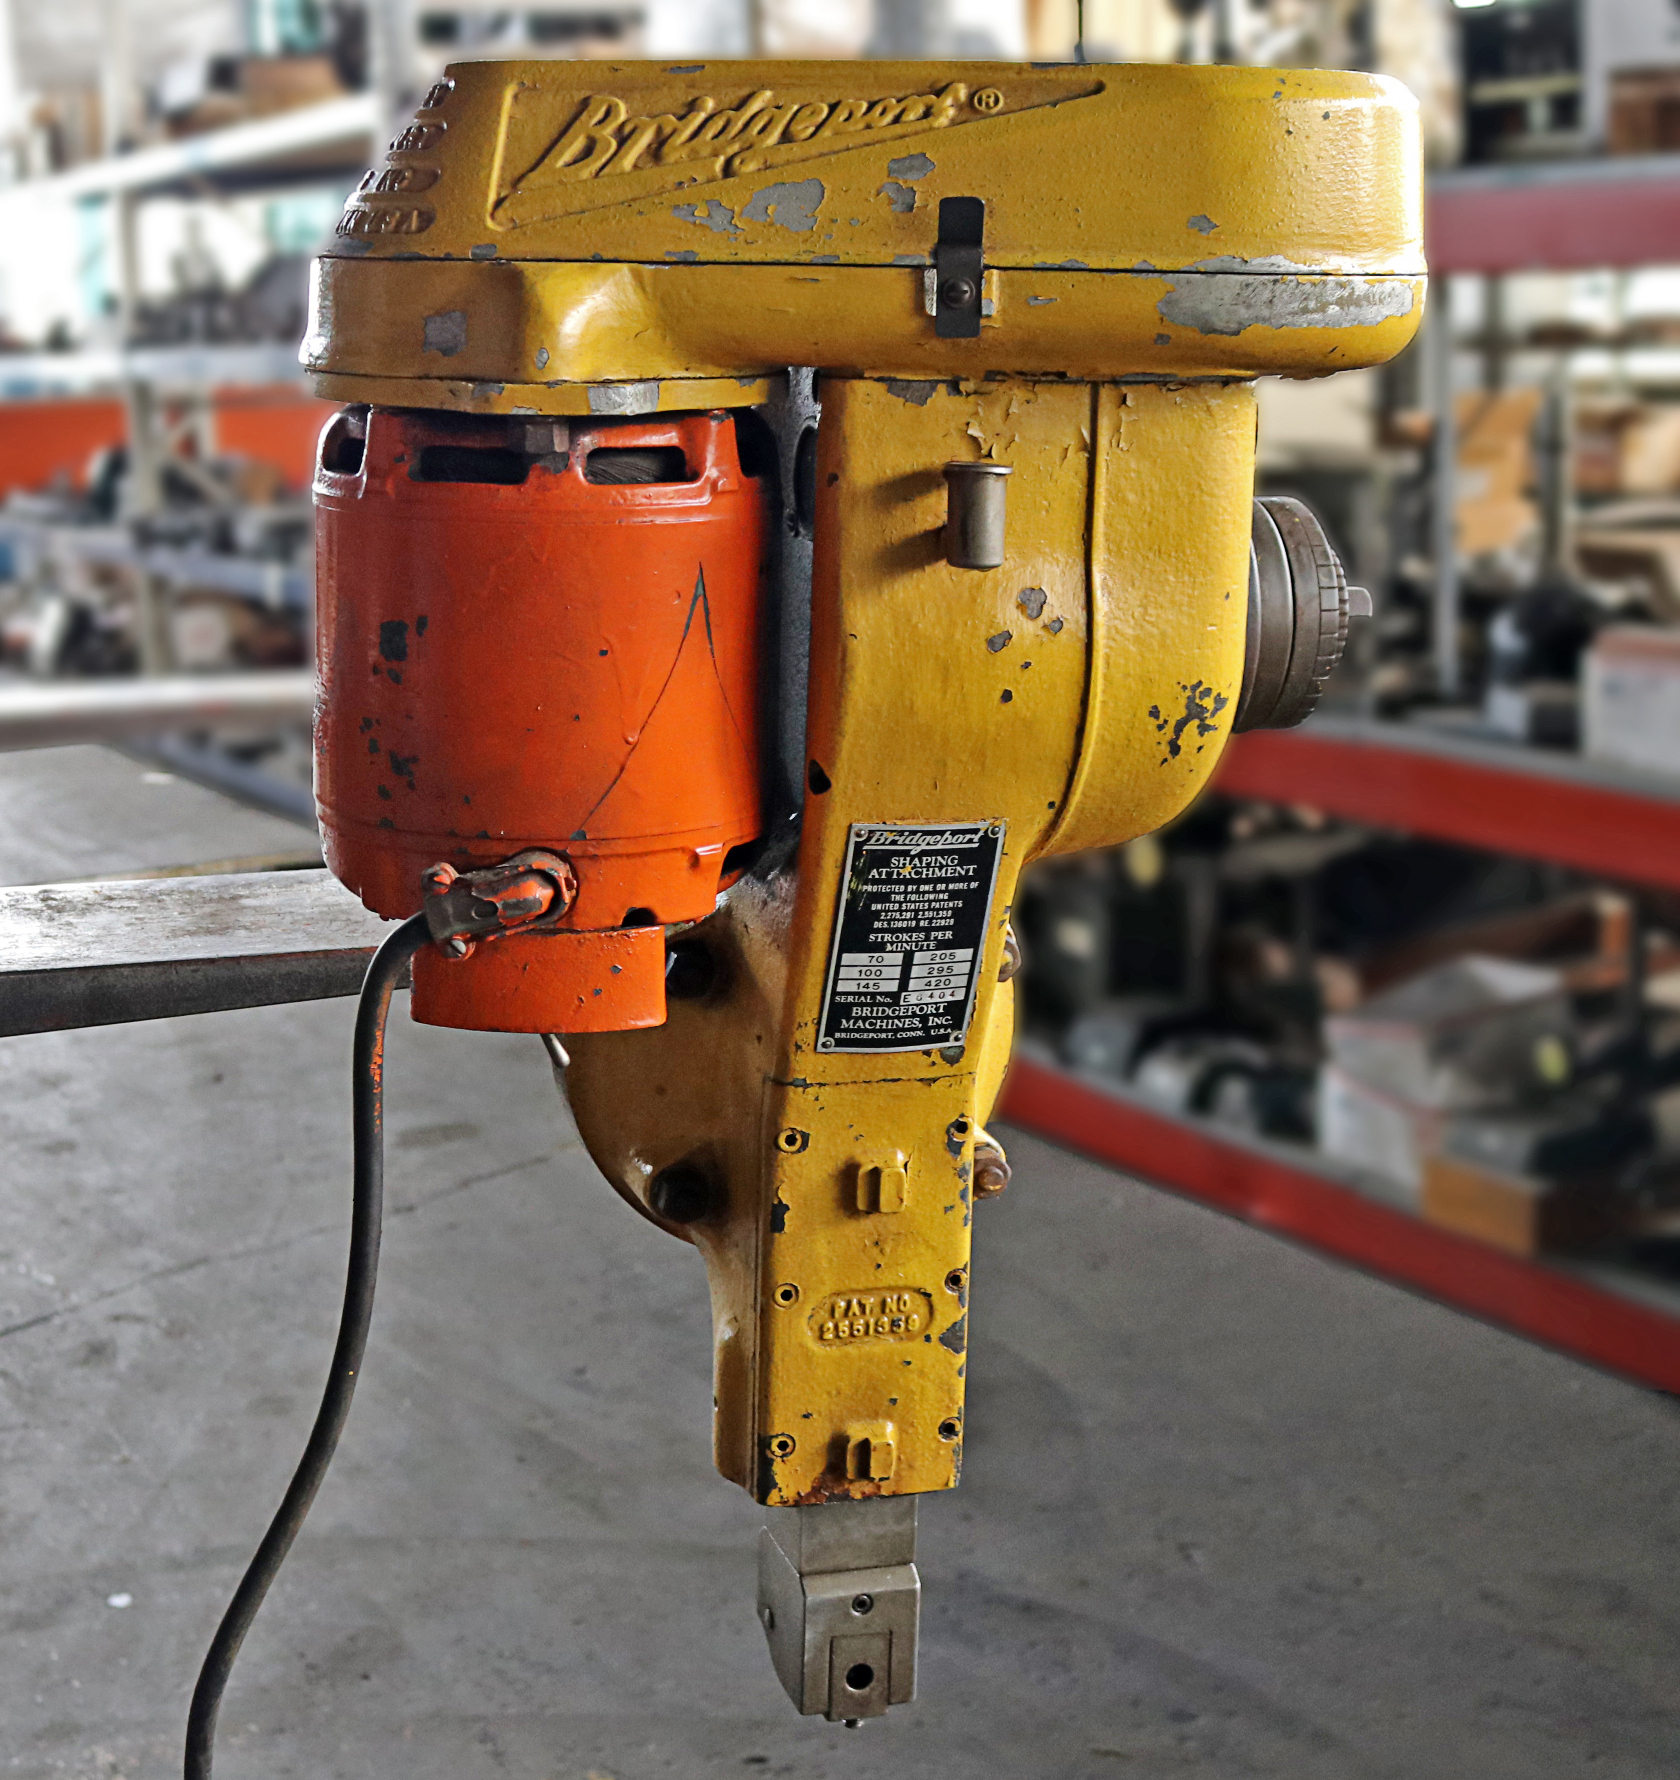 Milling Machine For Sale >> Bridgeport Vertical Milling Machine Shaping Head Sale Pending